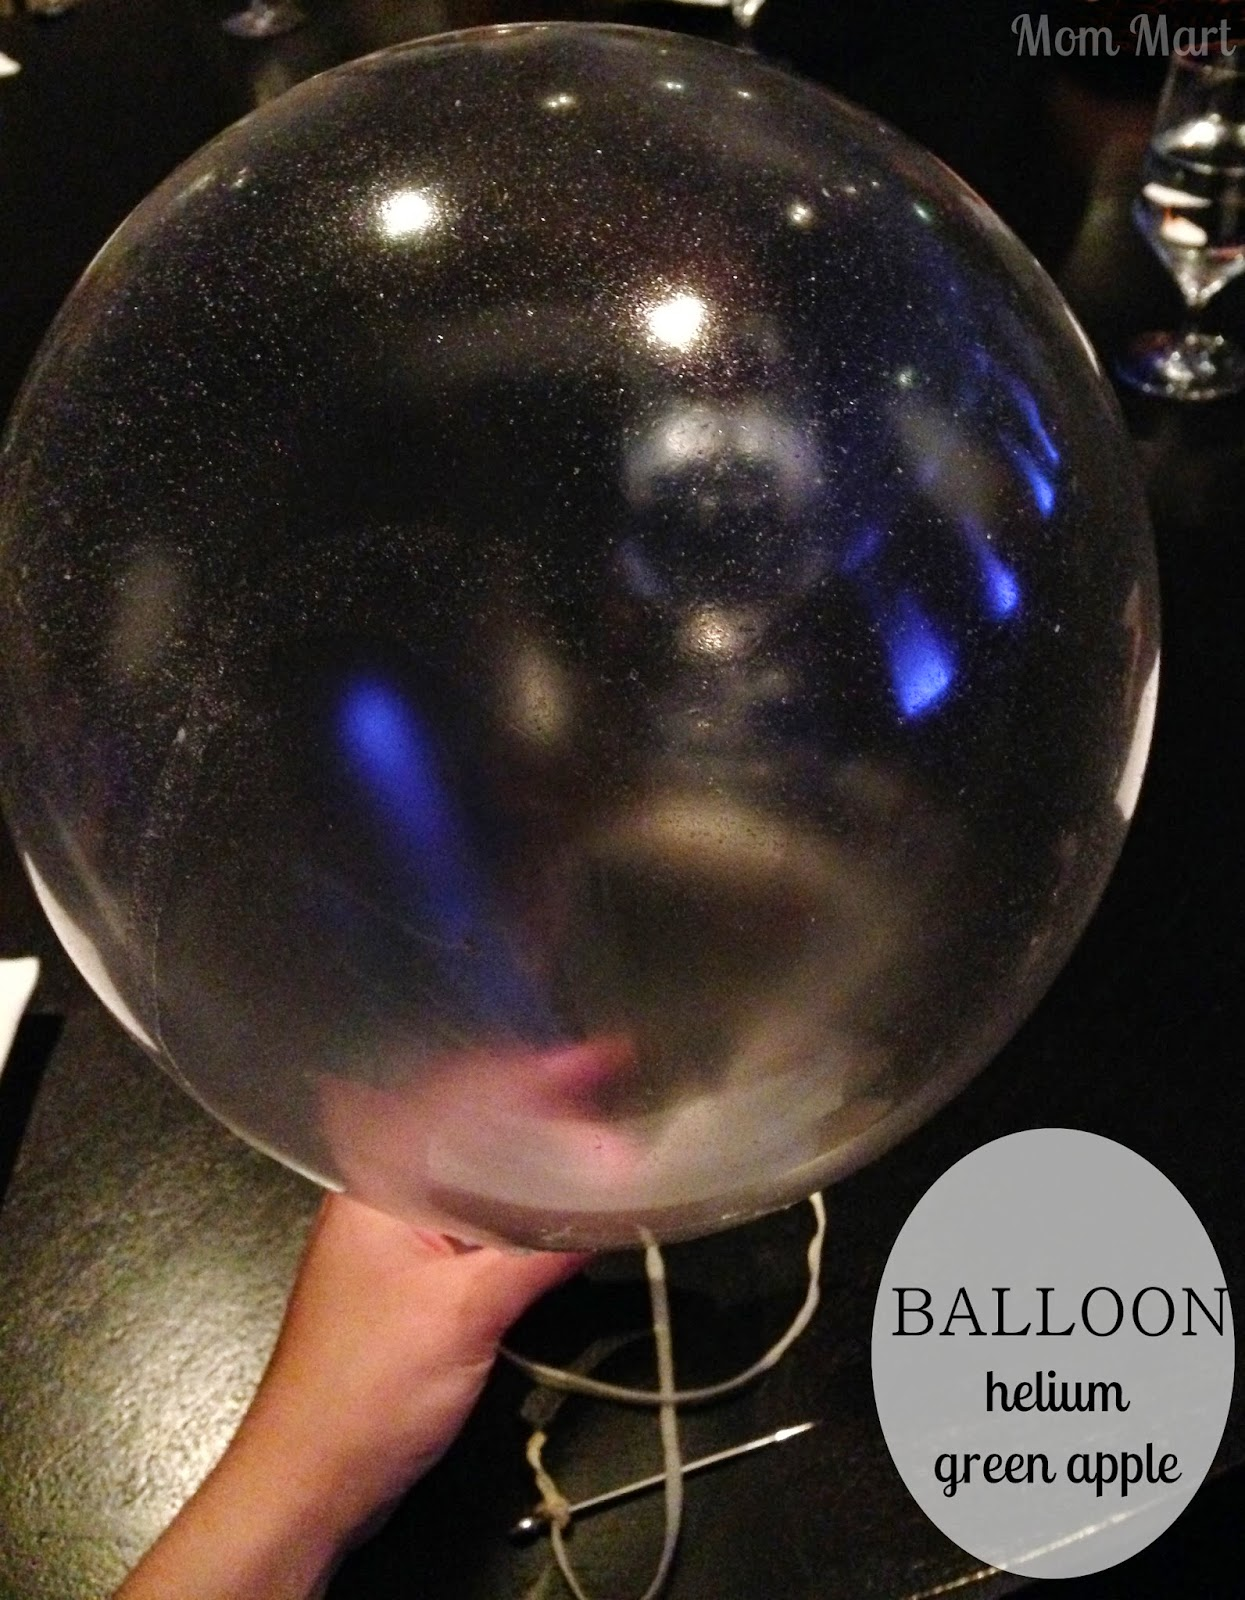 Alinea Restaurant of Chicago: BALLOON: helium, green apple